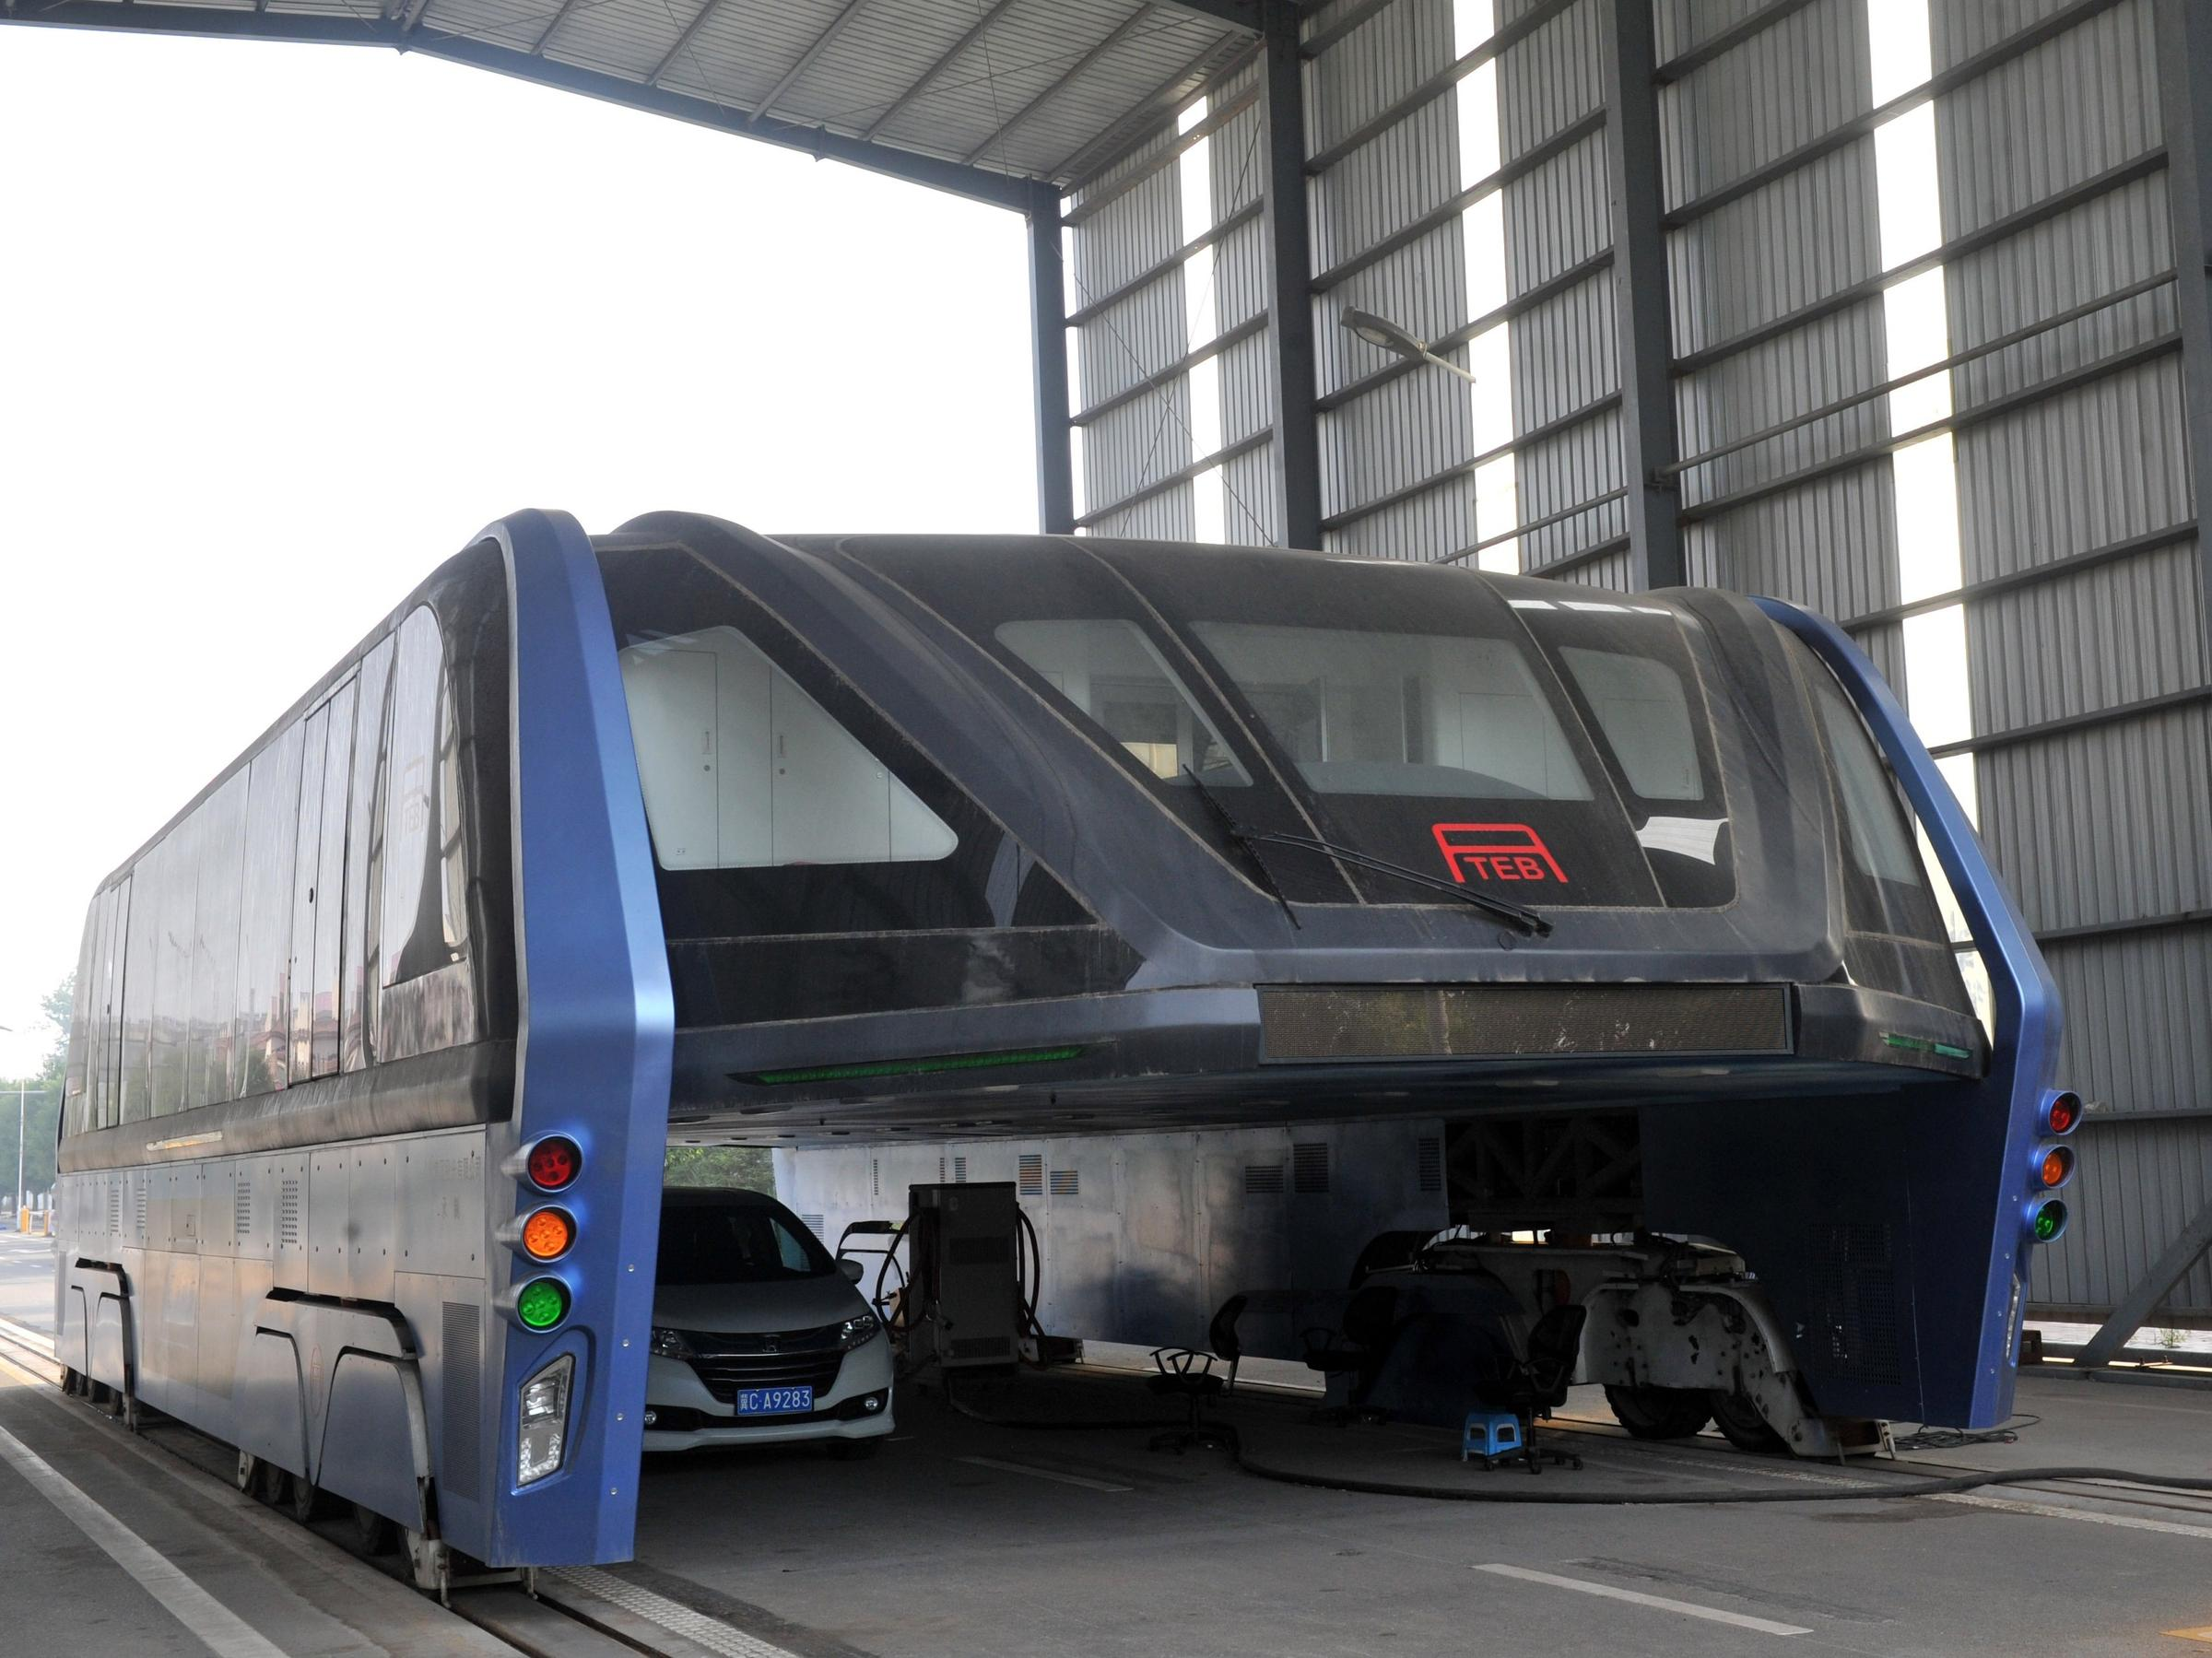 Elevated Transit Bus Service of China - Future Technology turned huge Scam